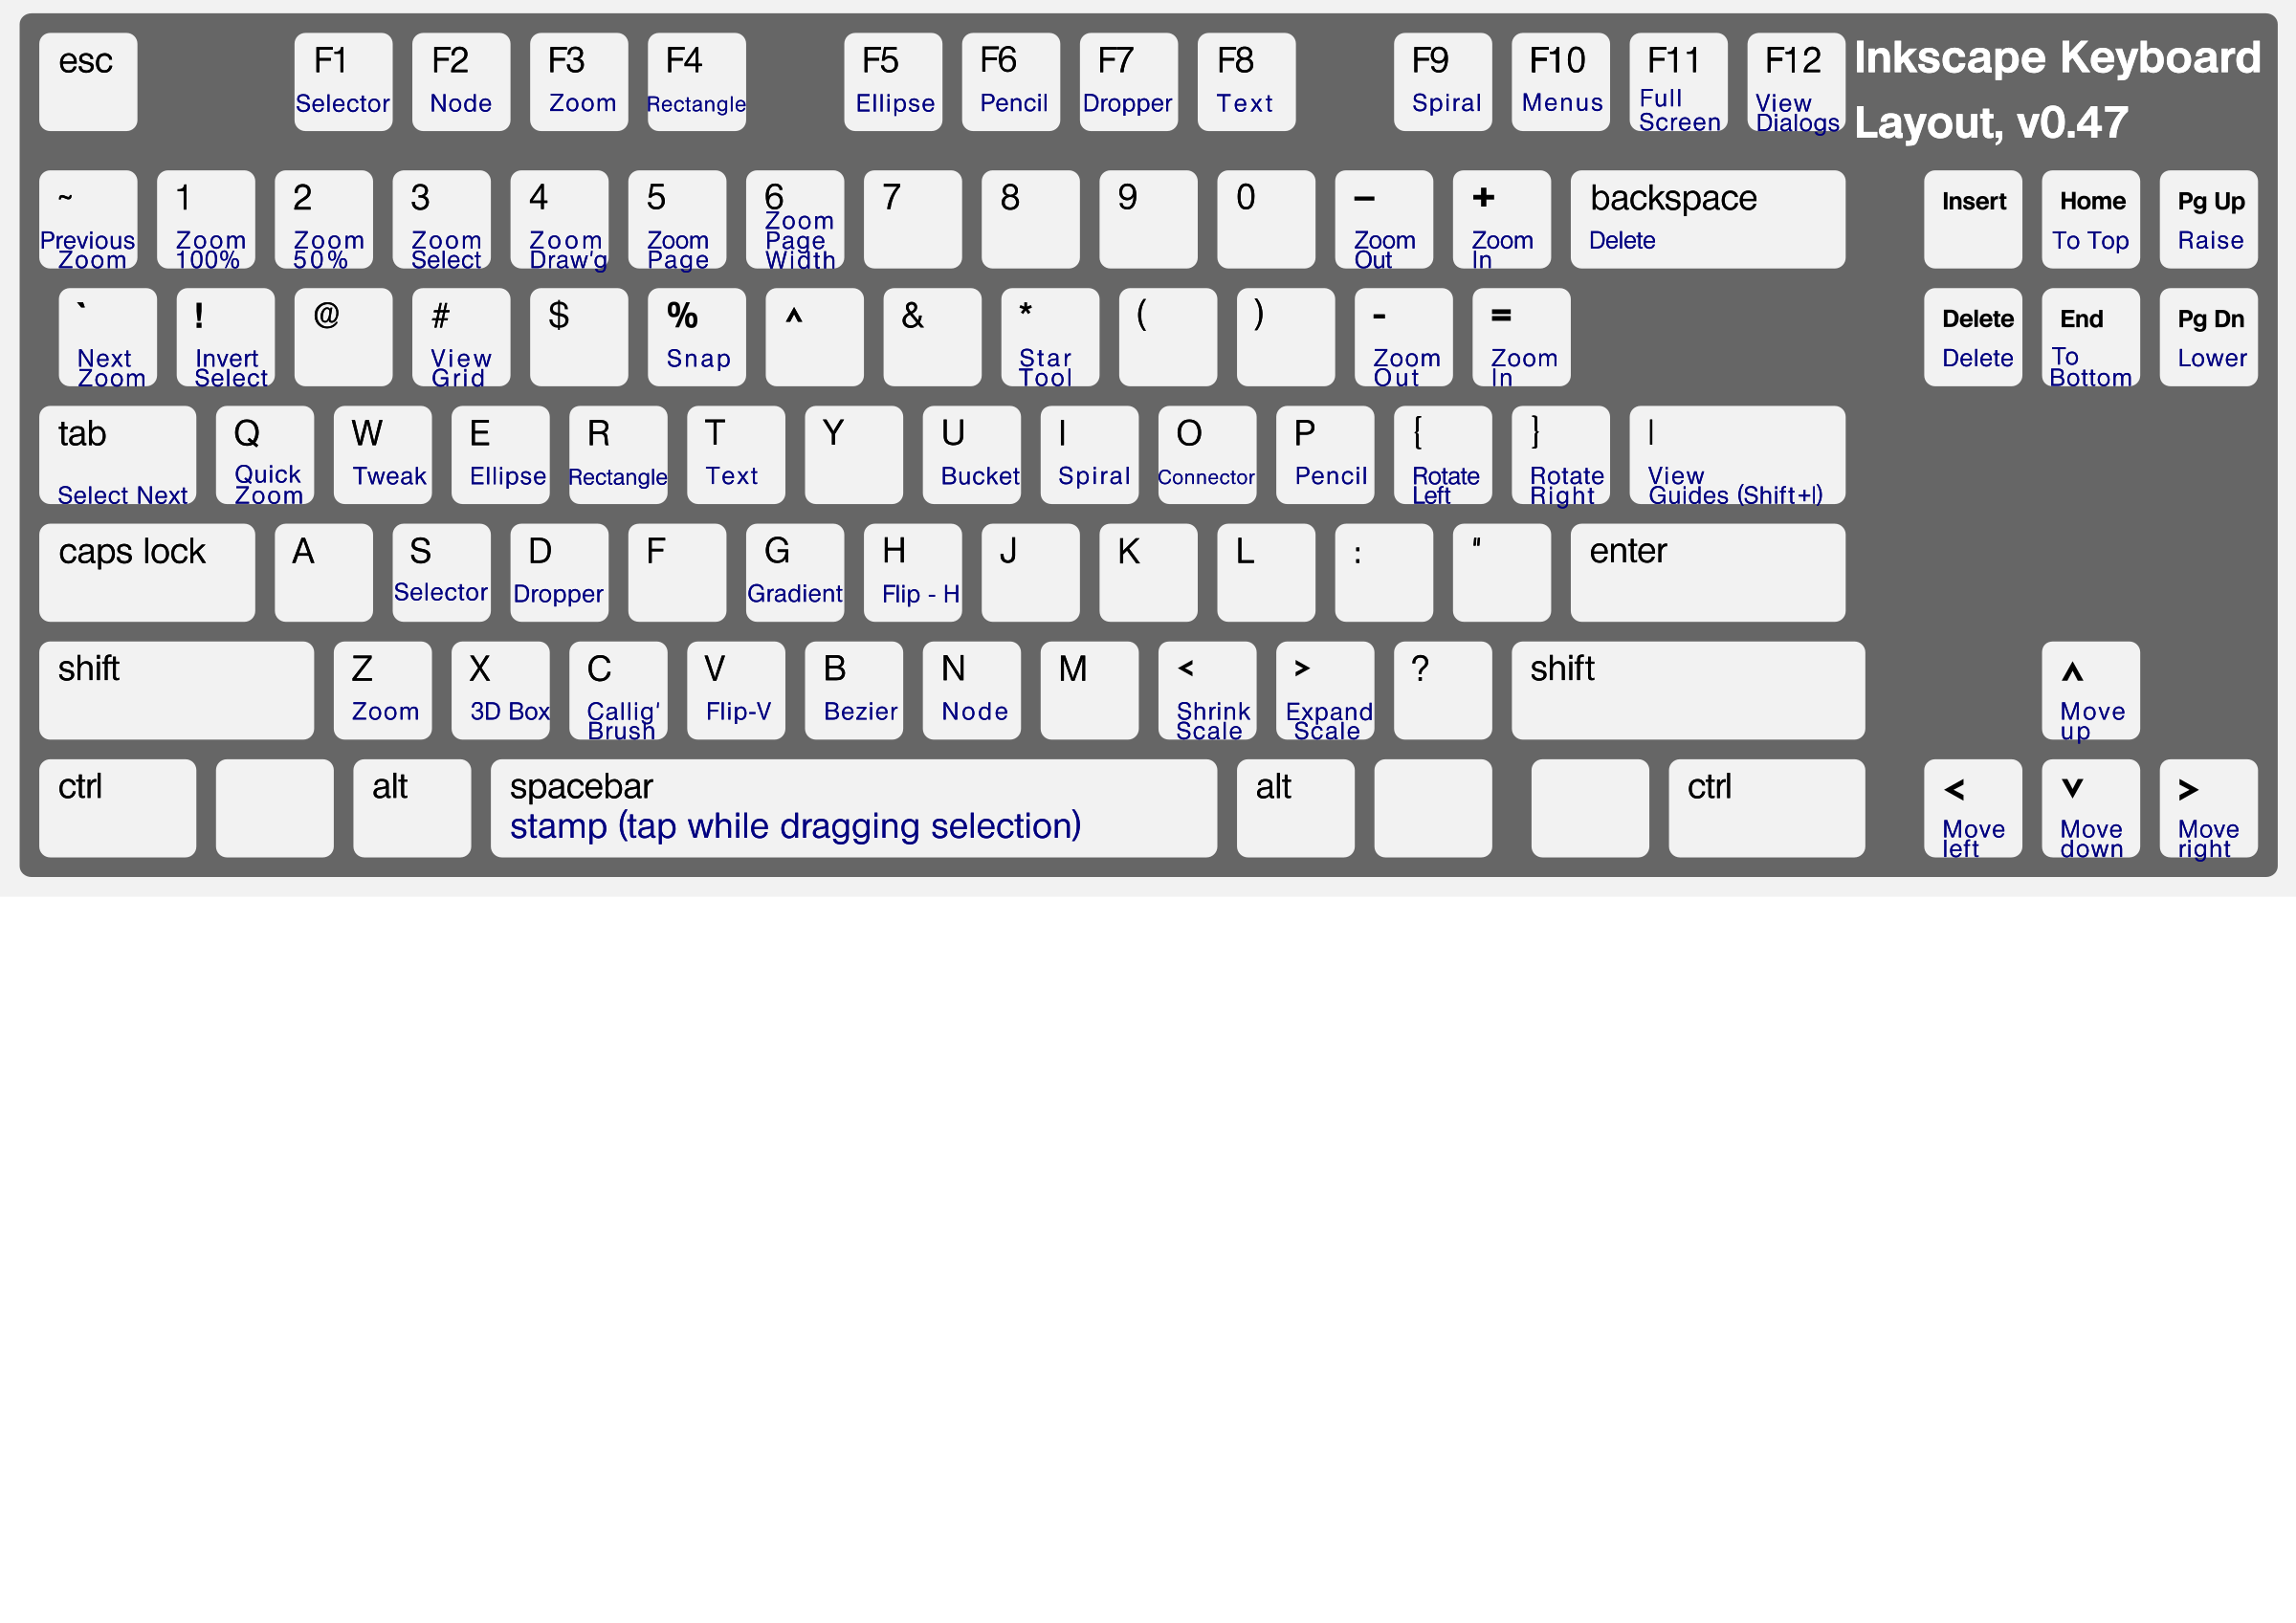 Keyboard layout png. Clipart inkscape big image